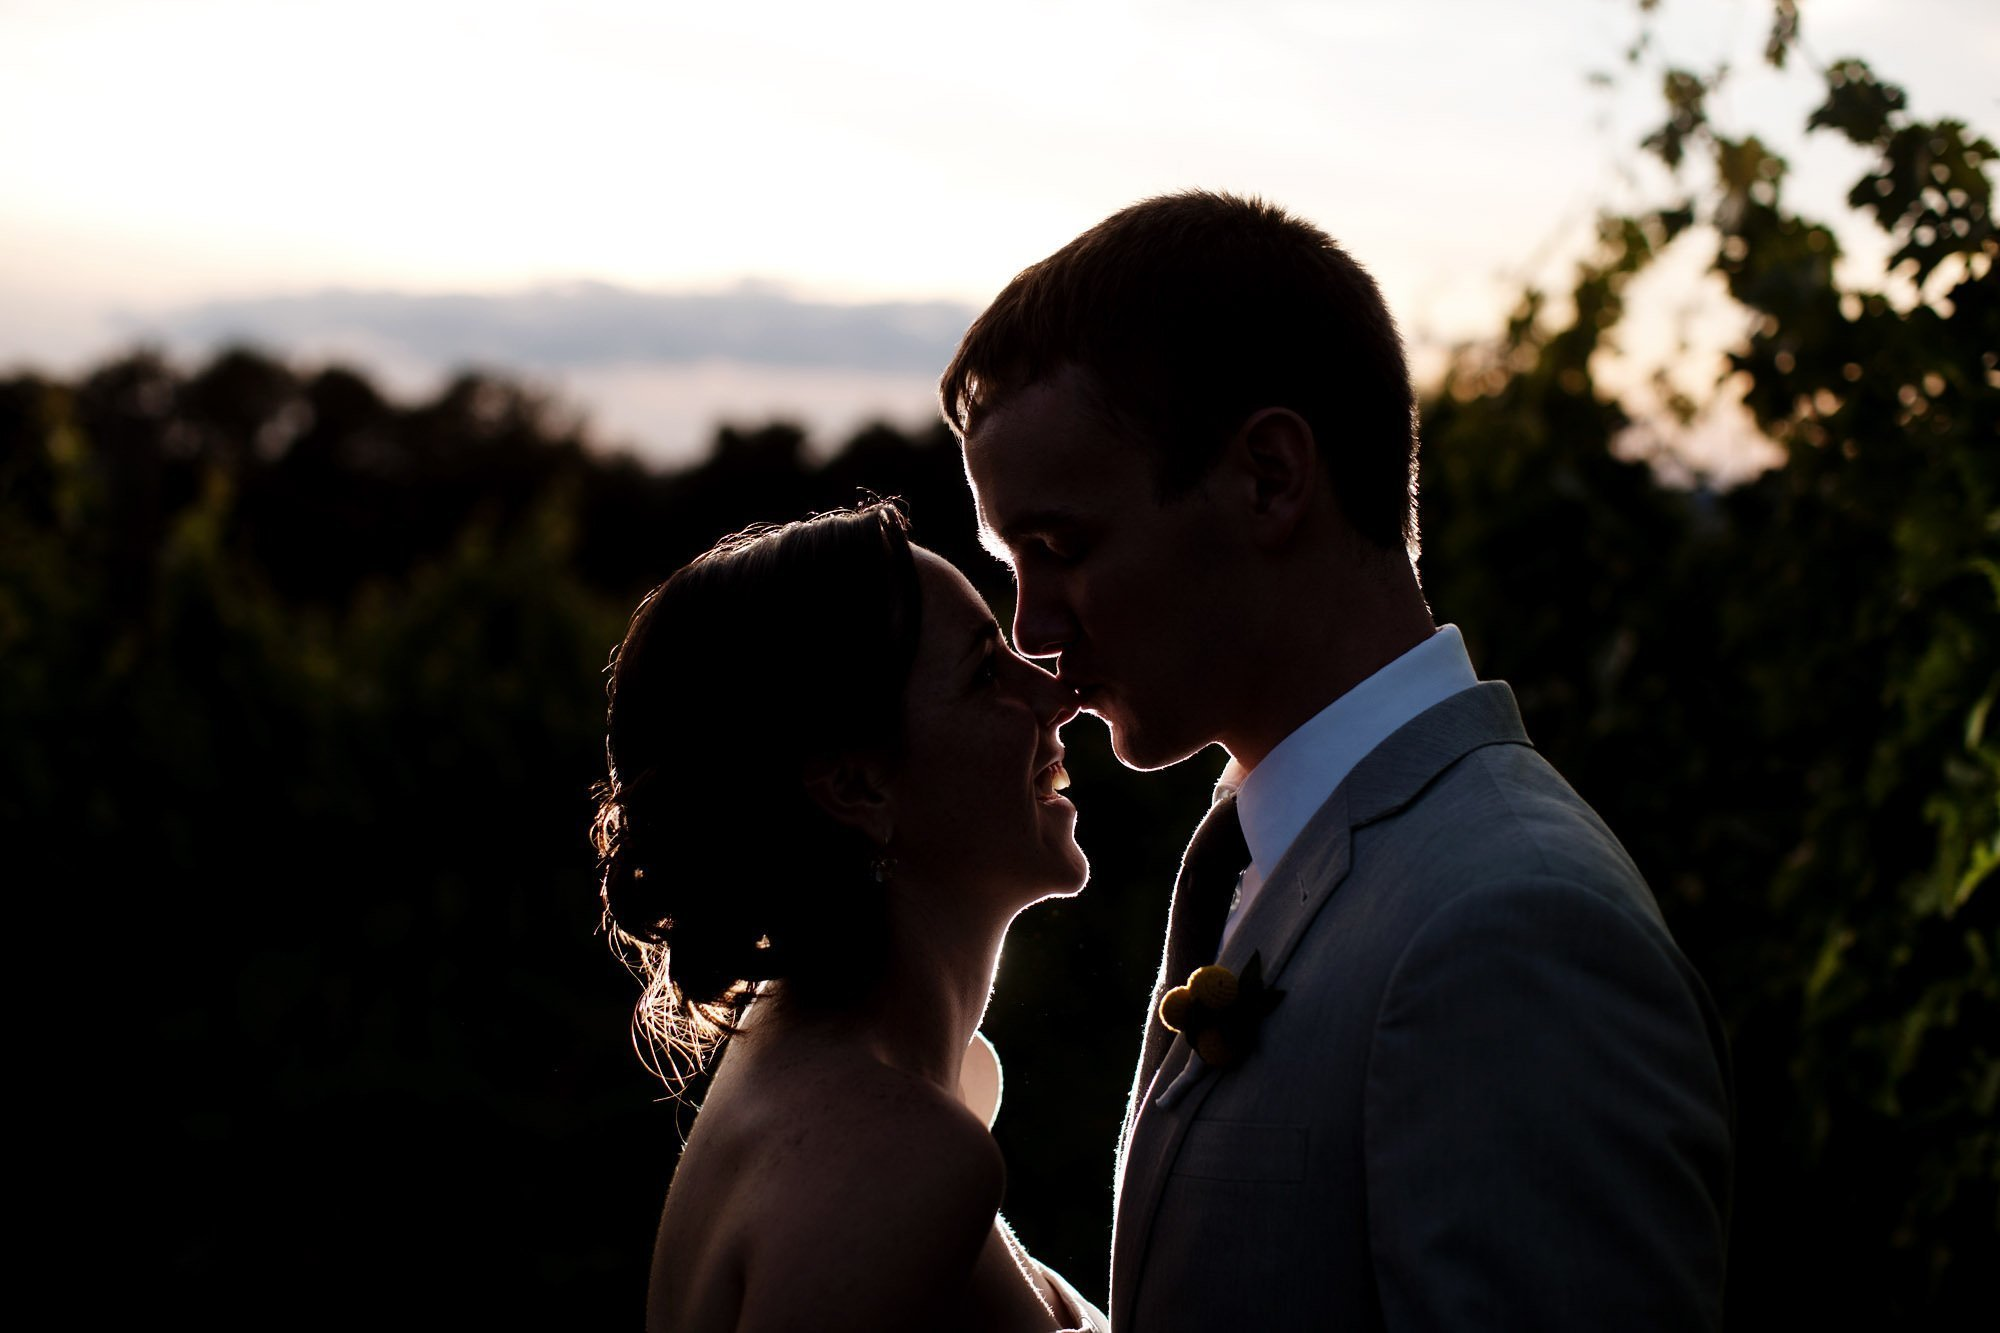 The bride and groom kiss during sunset in the field during their Sunset Hills Vineyard wedding.